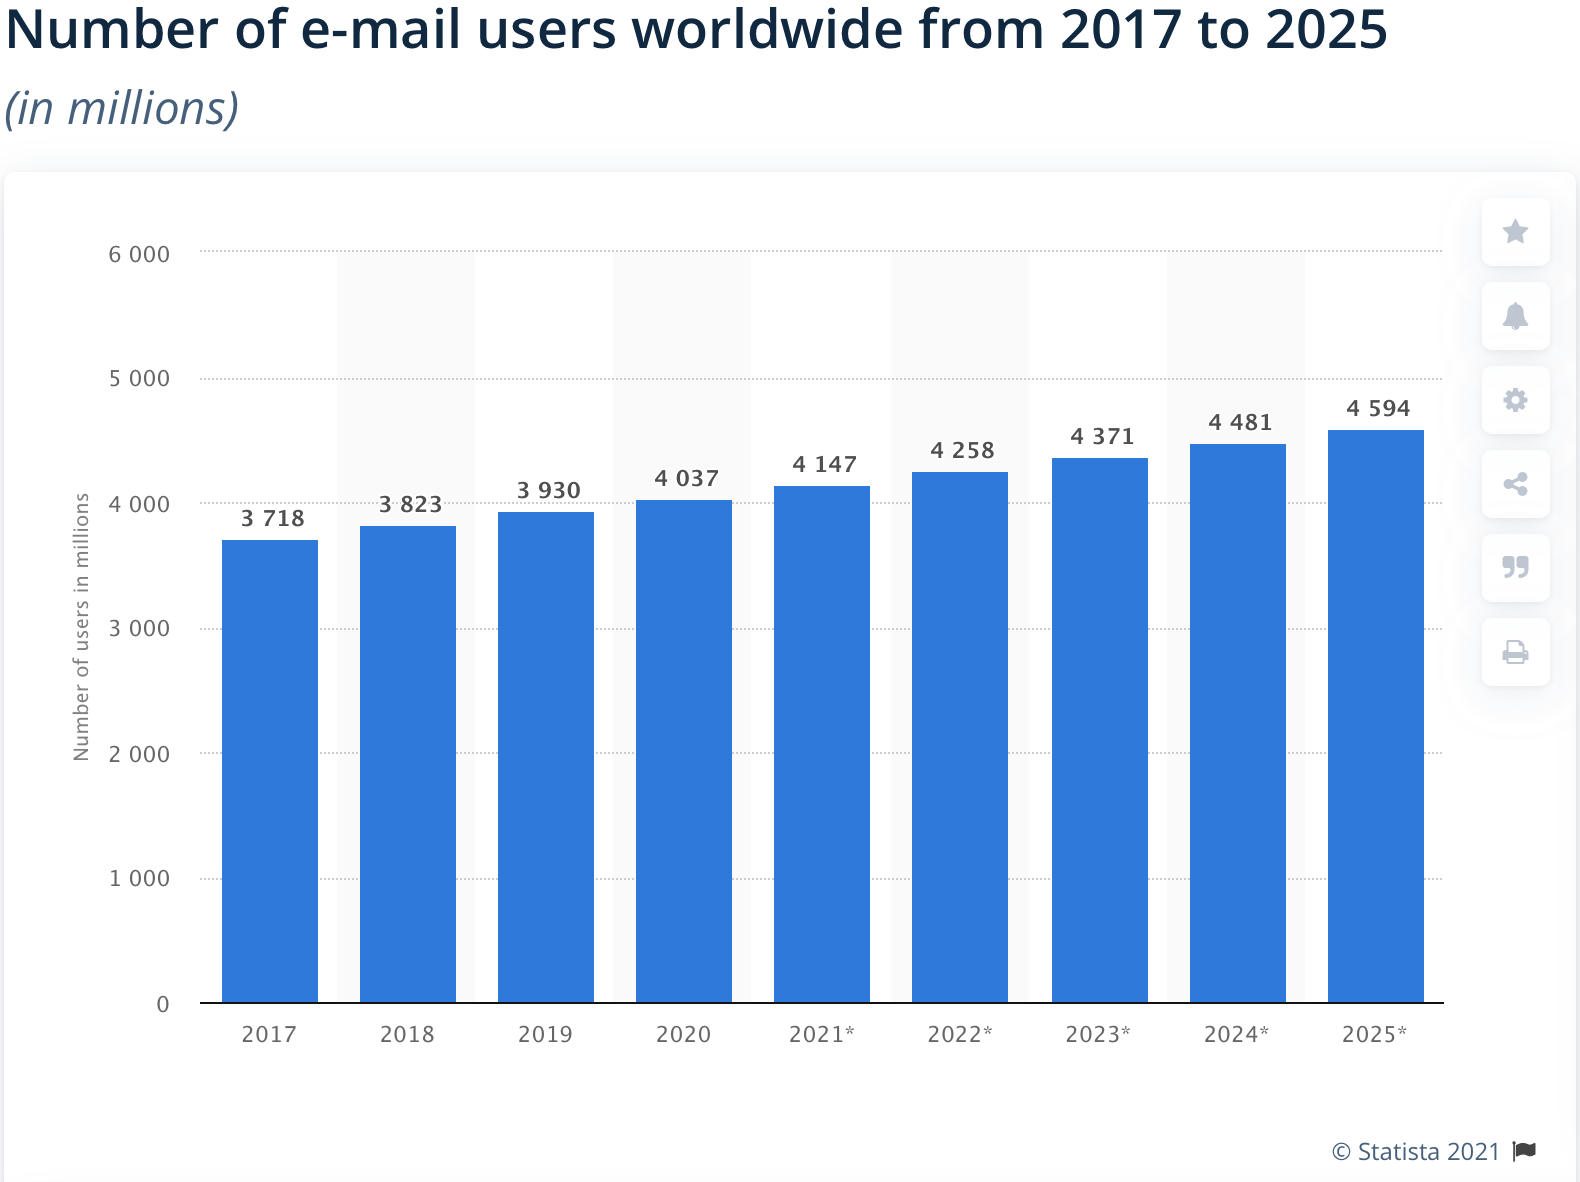 Statistic of number of email users worldwide by Statista